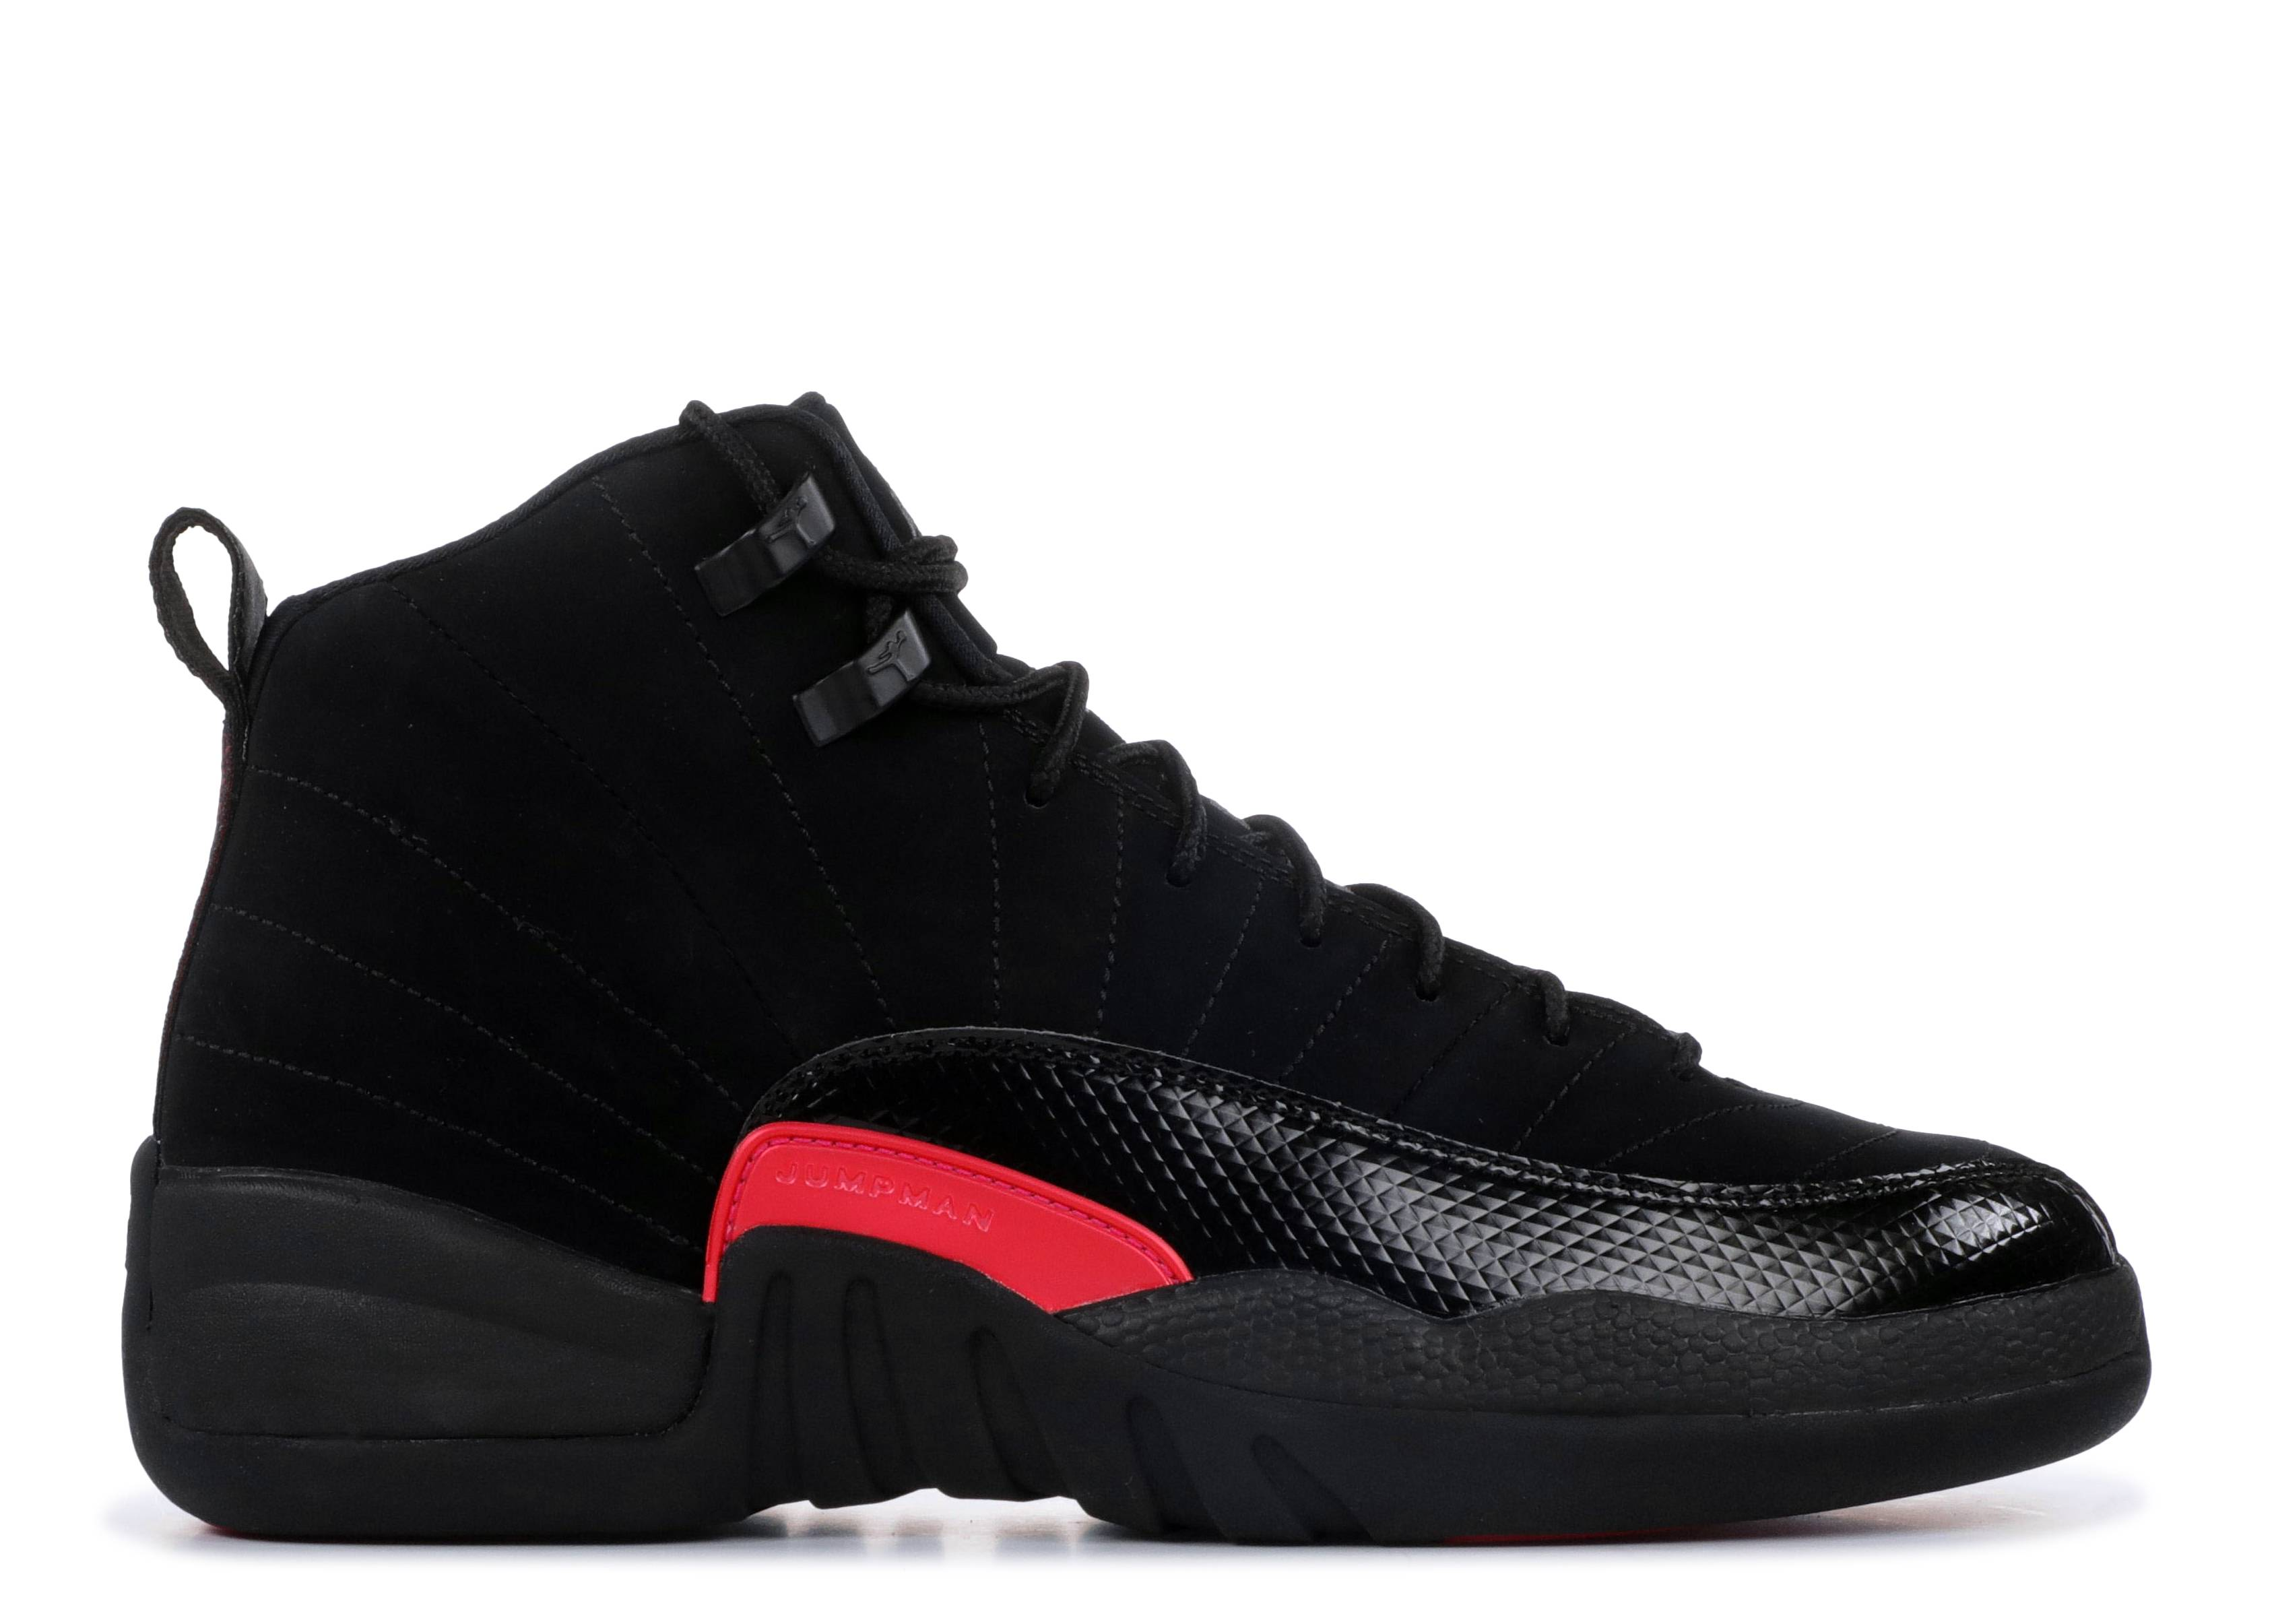 105393635a0 Air Jordan 12 (XII) Shoes - Nike